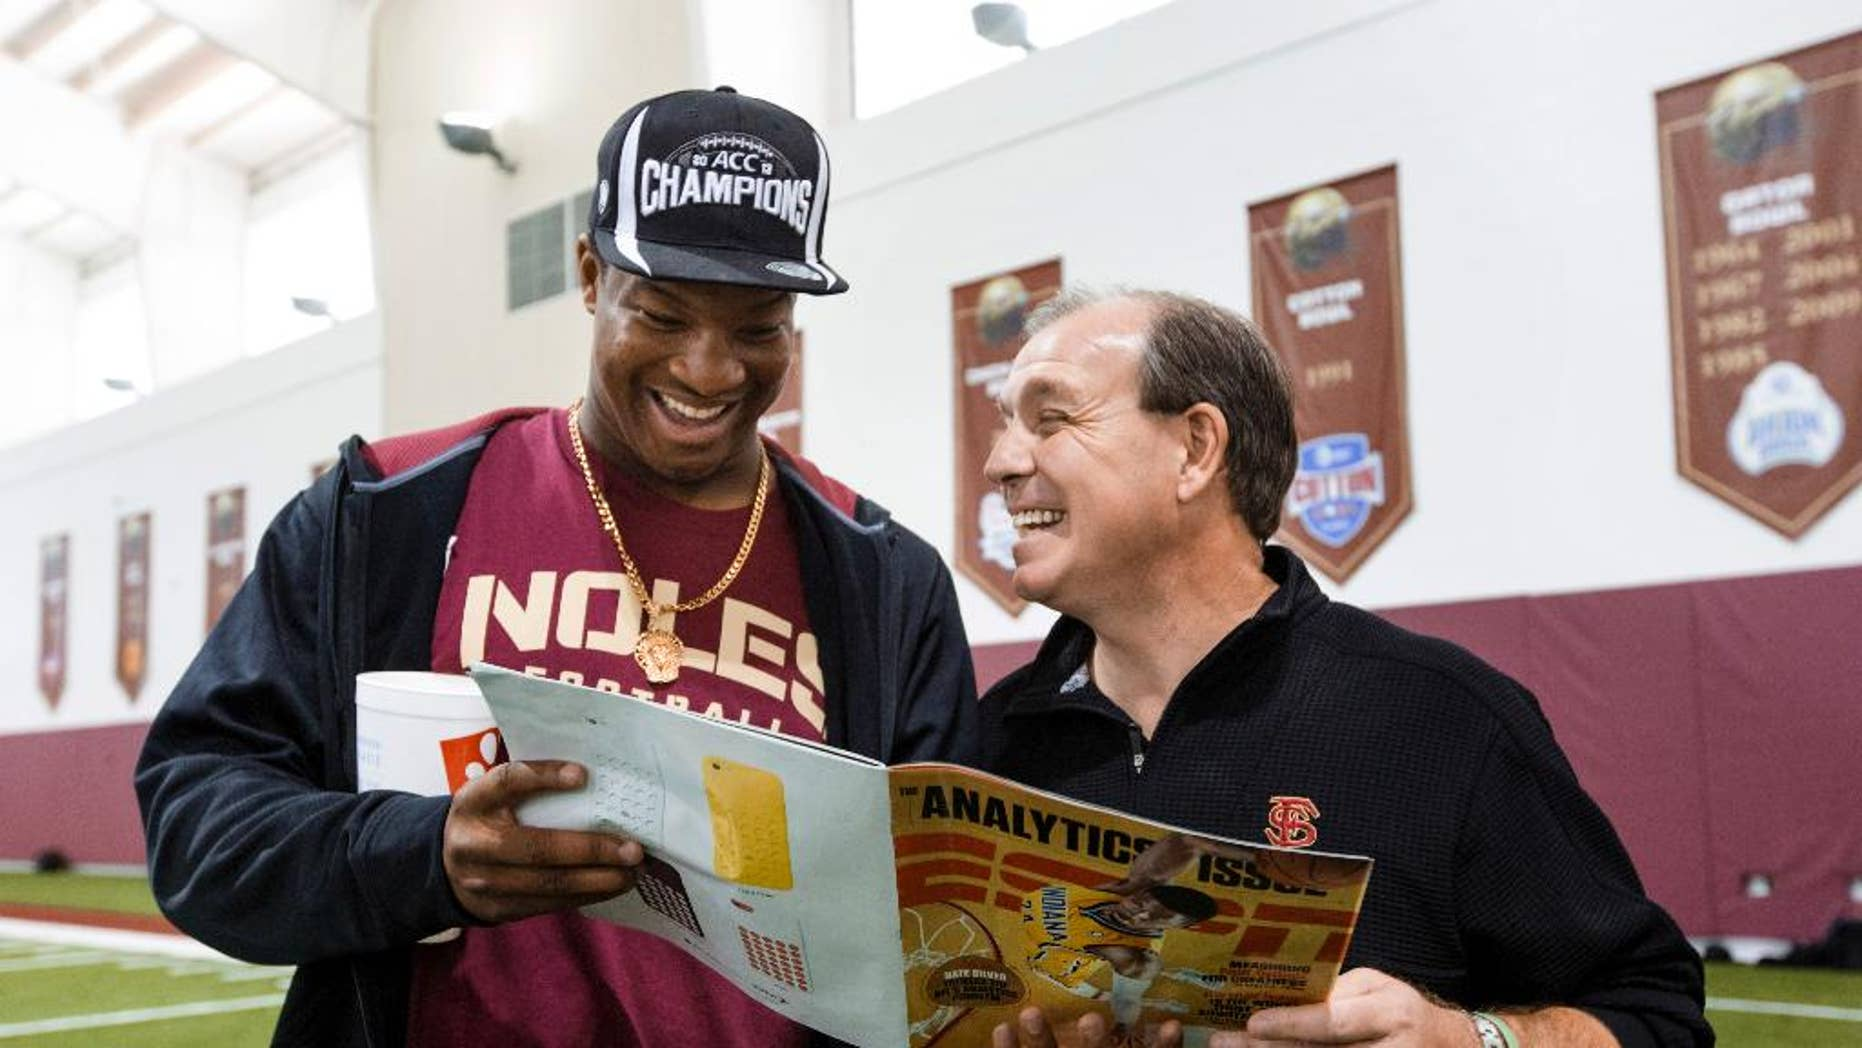 Florida State Jimbo Fisher, right, looks at a magazine with quarterback Jameis Winston during pro day at Florida State on Tuesday, March 18, 2014, in Tallahassee, Fla. Winston did not participate in pro day, but came by to visit Fisher after the event. (AP Photo/Colin Hackley)